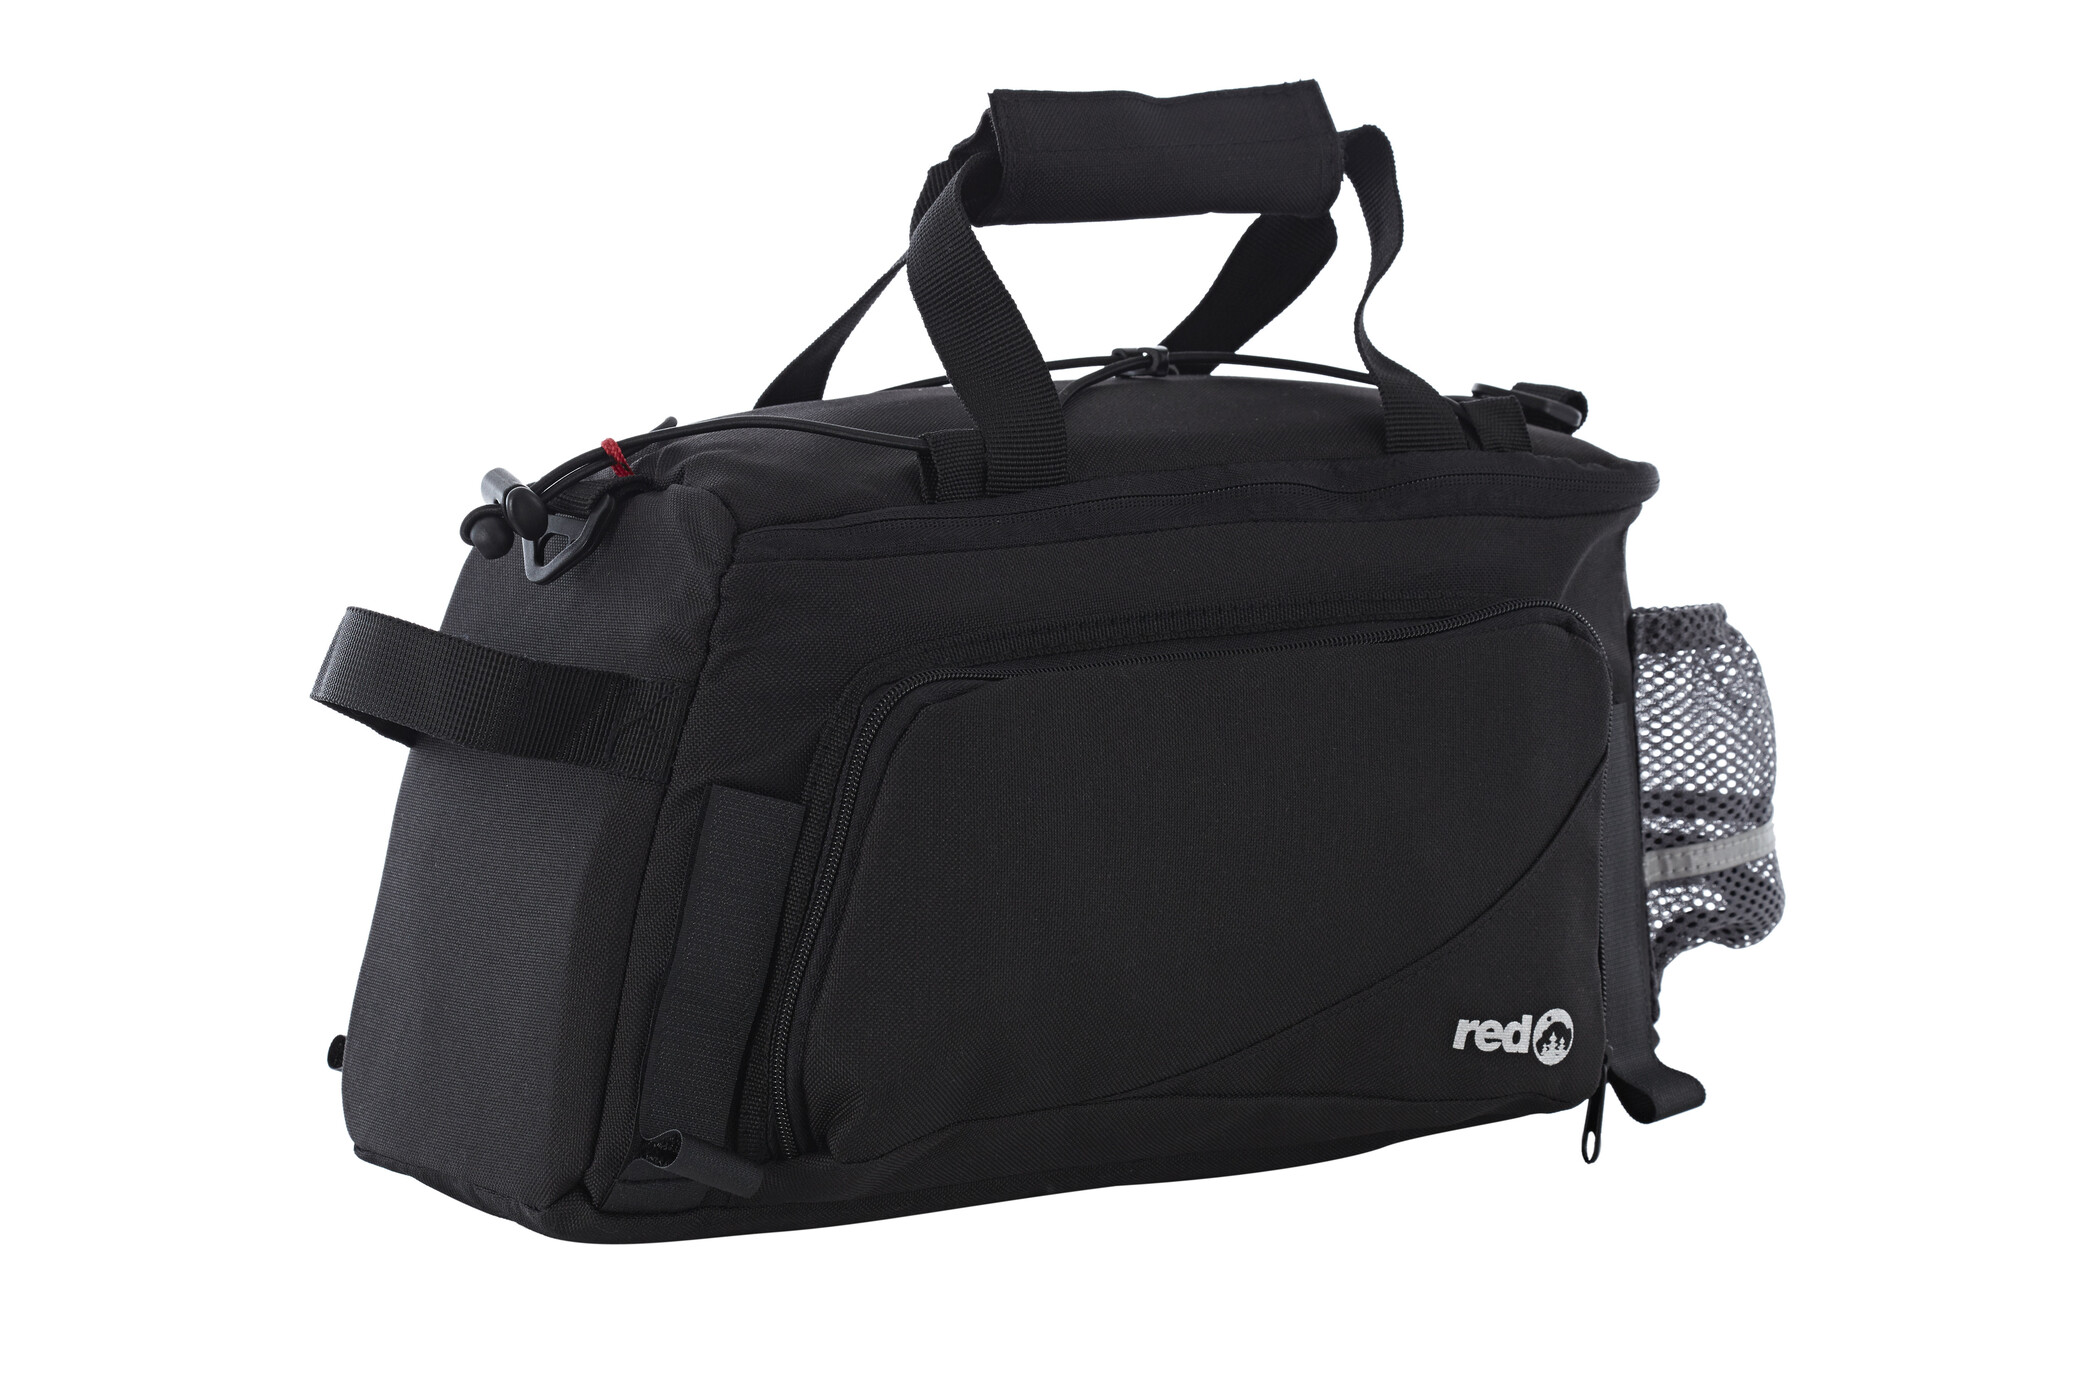 Red Cycling Products Back Loader Sidetasker, black (2019) | Rack bags